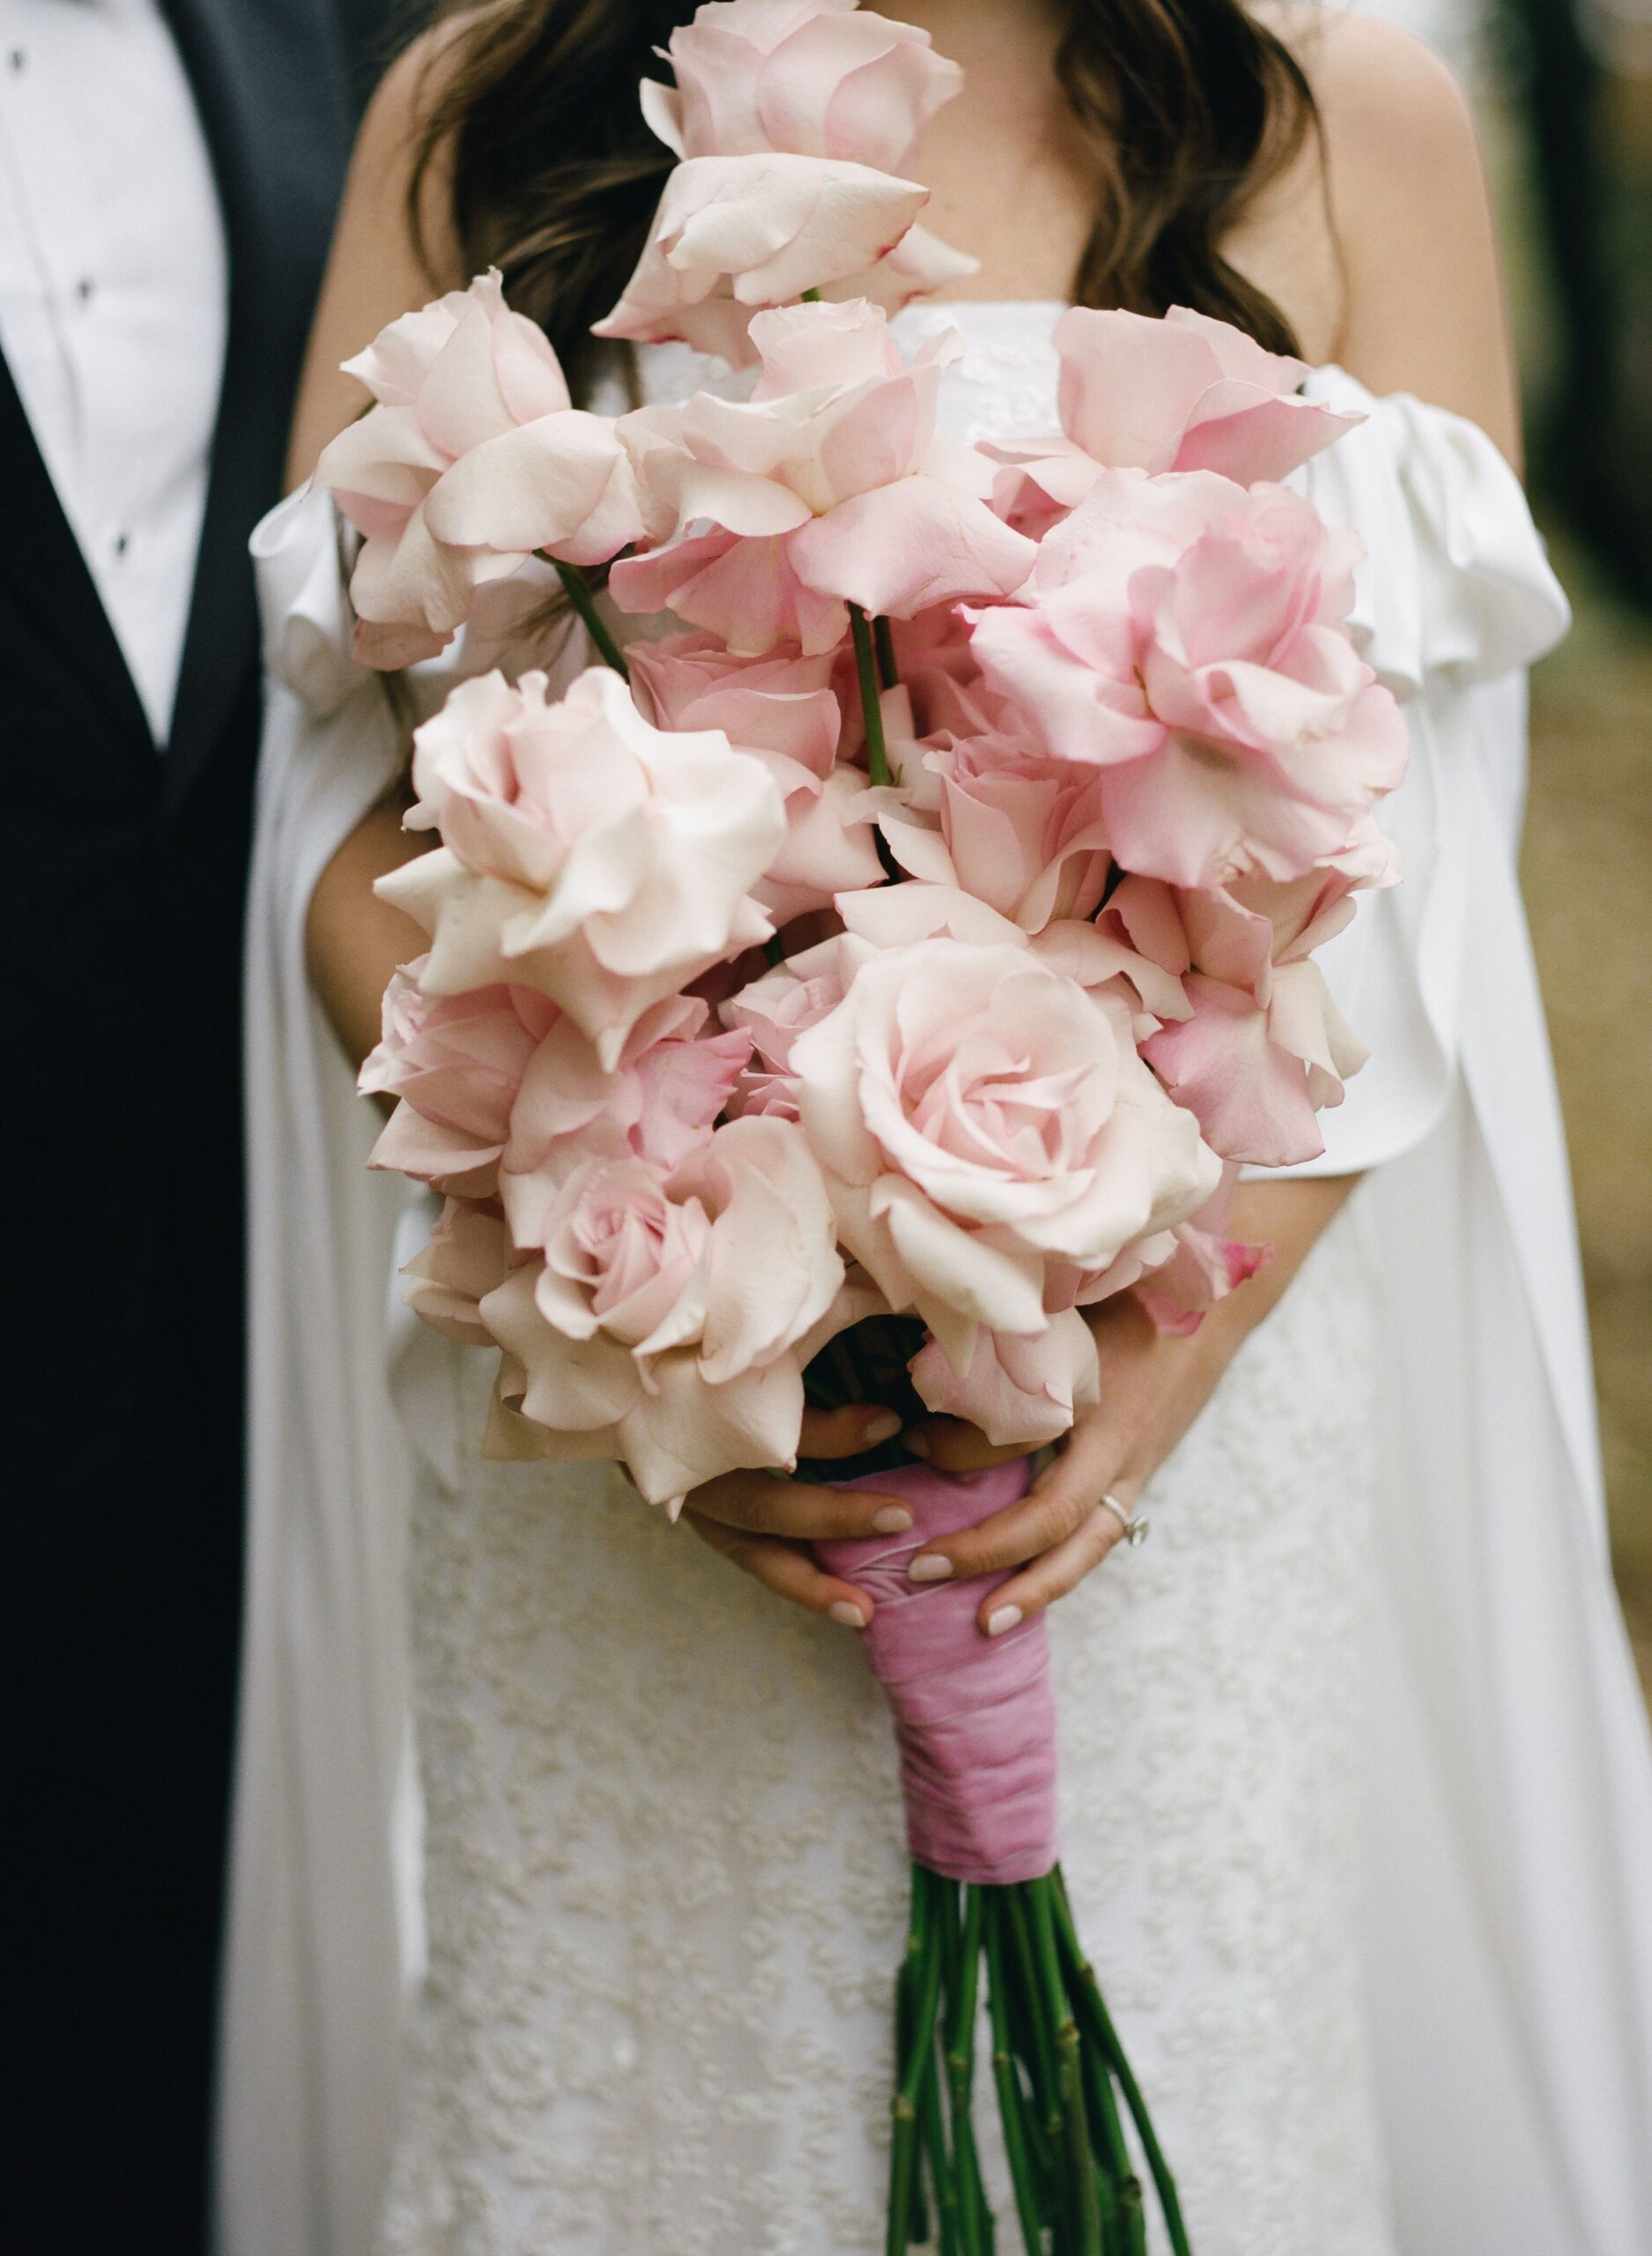 choose pink roses wedding bouquet for your wedding 1 scaled - Choose Pink Roses Wedding Bouquet for Your Wedding